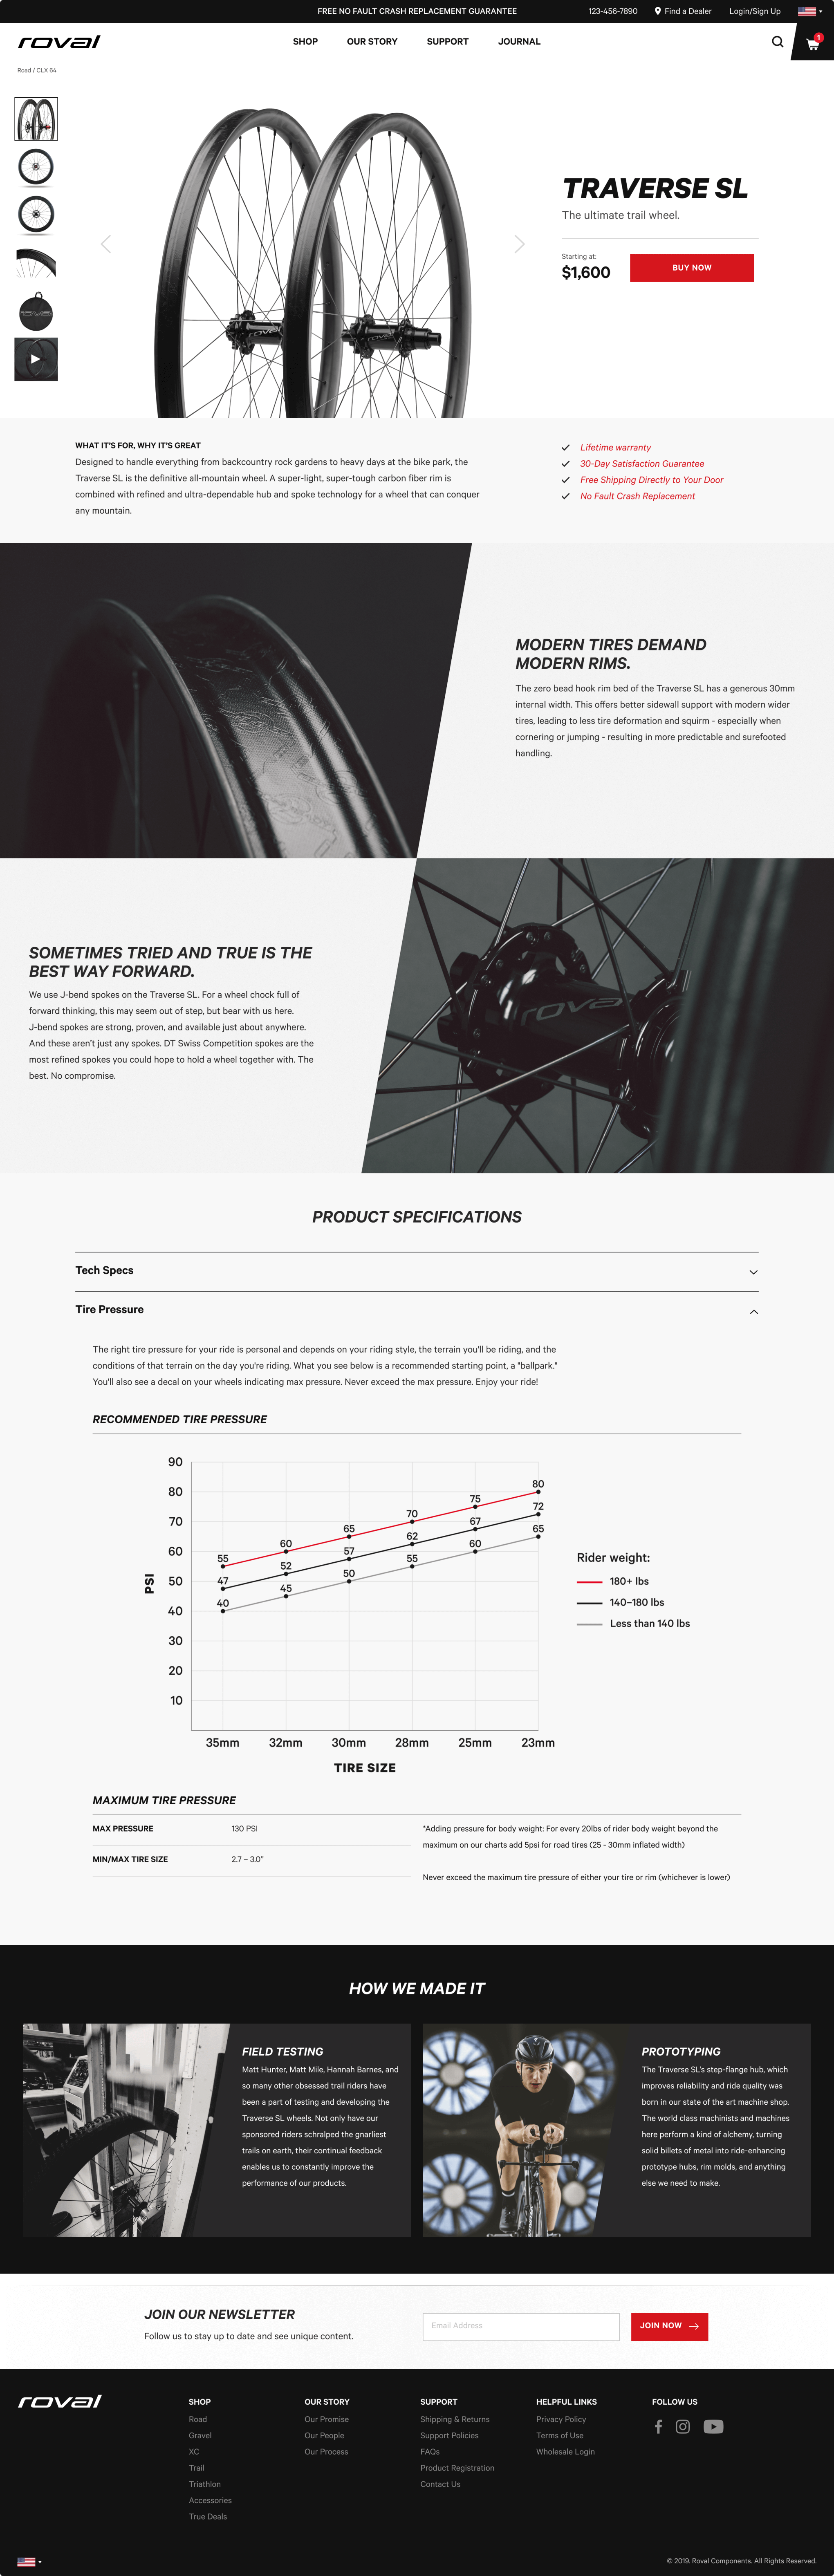 The final design for a Roval product page shows thorough specifications for the wheelset.